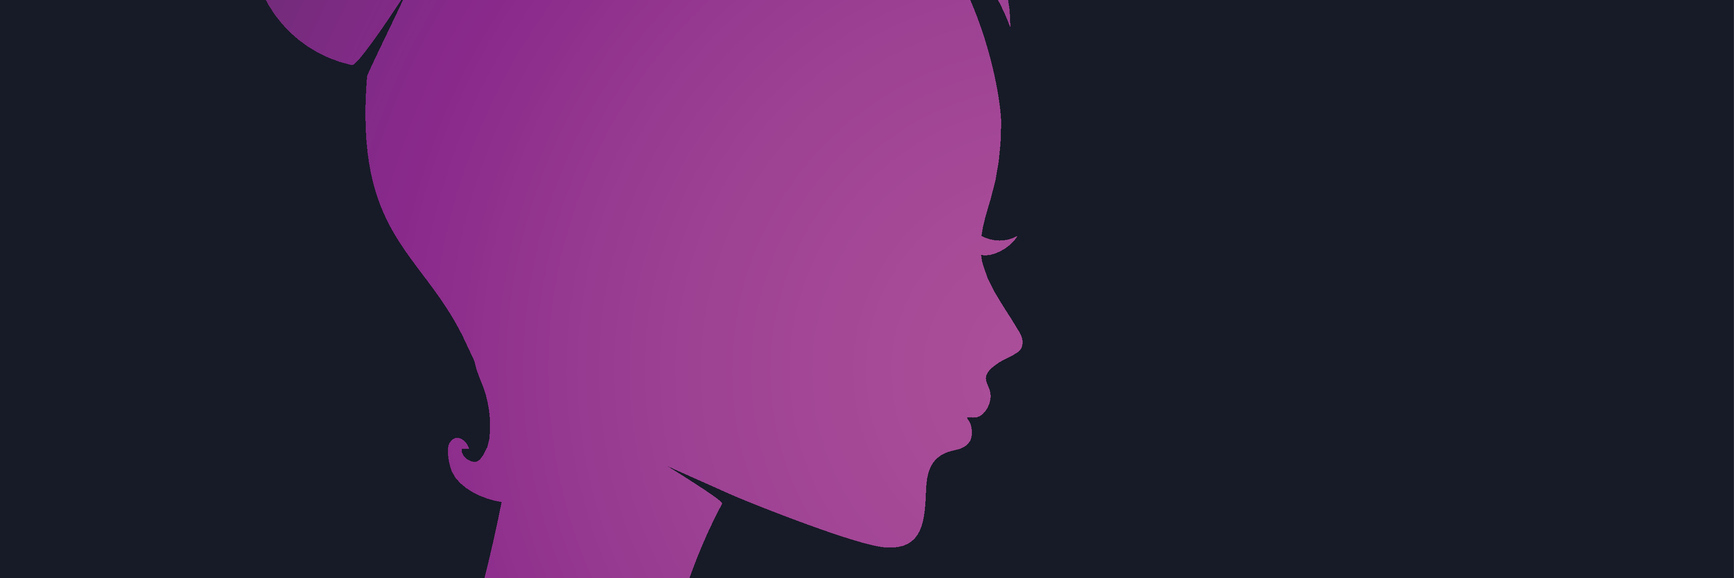 A woman's silhouette in pink.